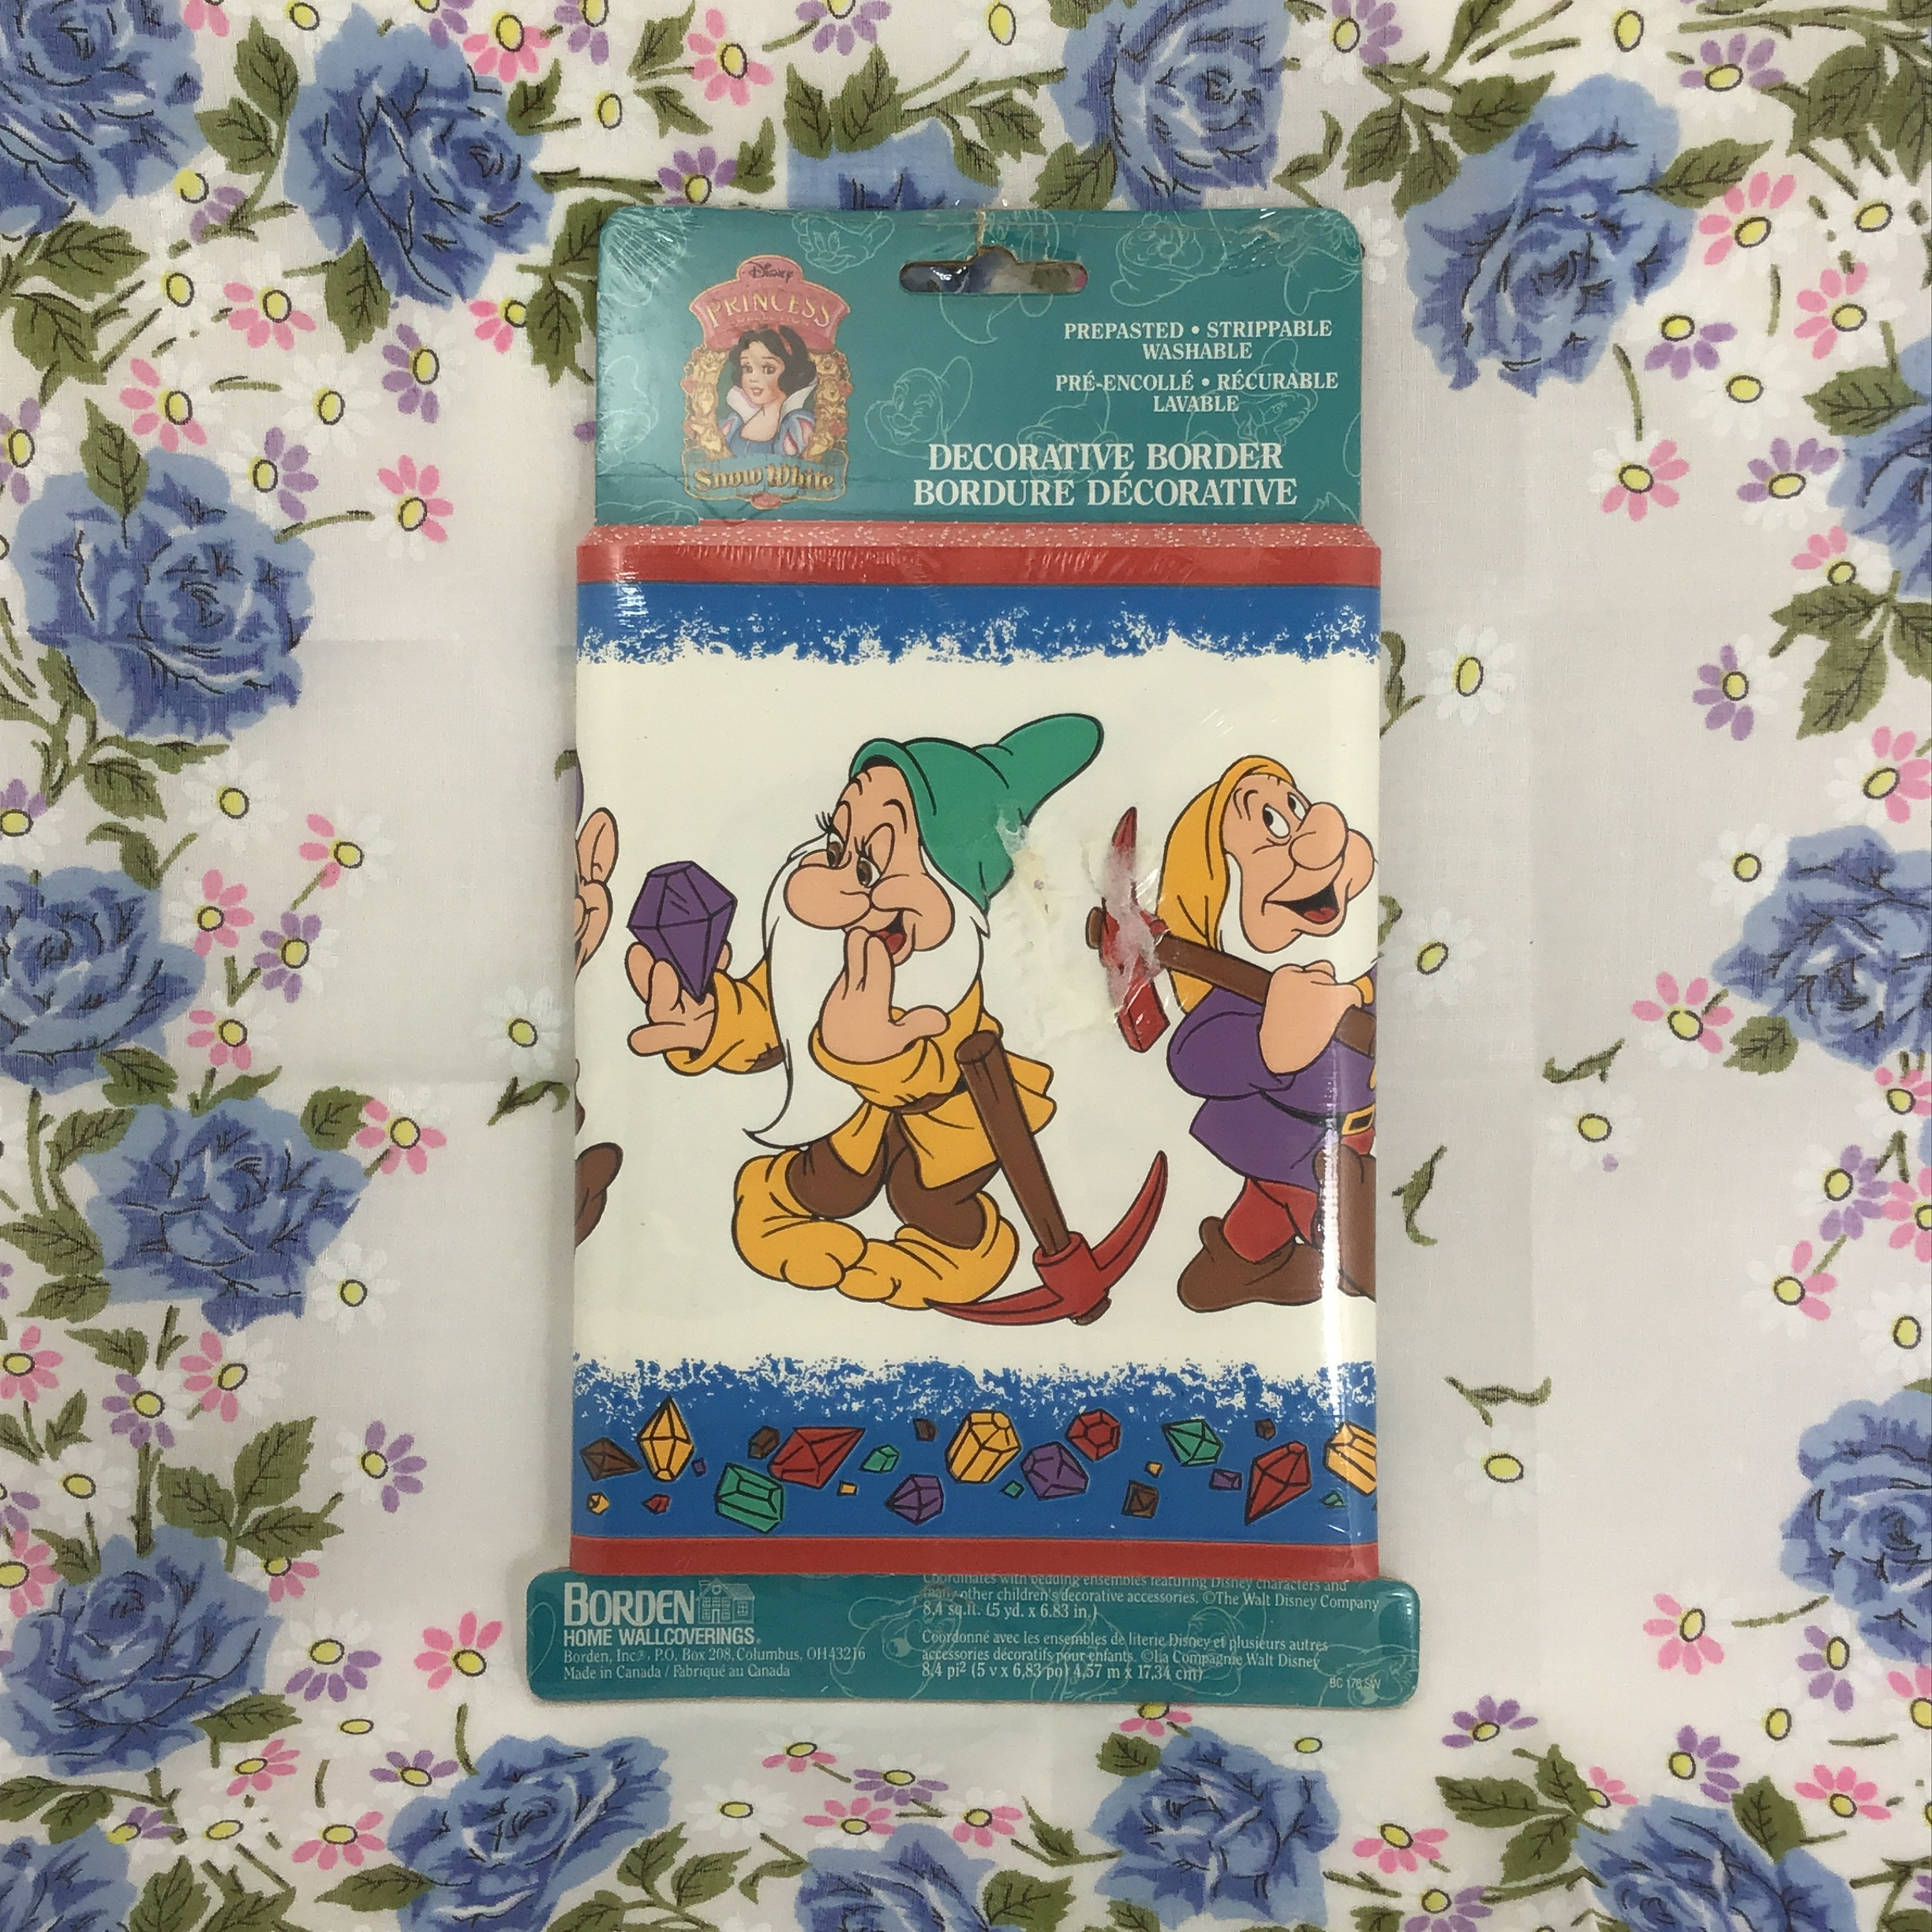 Disney Princess Snow White And The Seven Dwarfs Borden Prepasted Wallpaper Border 15 Foot